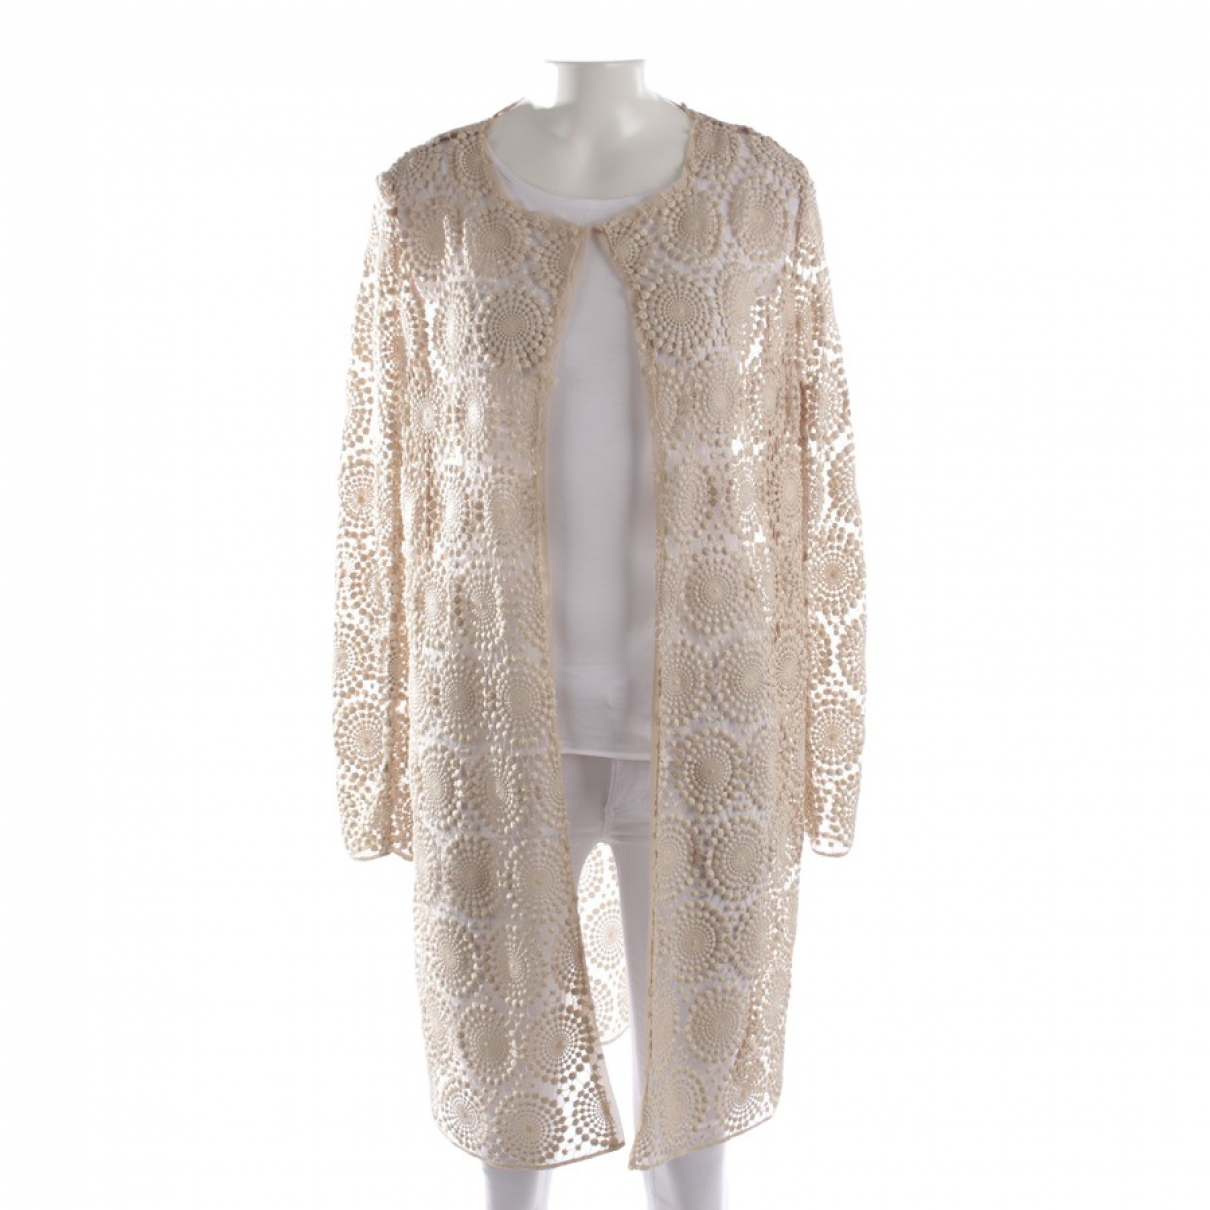 Maliparmi \N Beige jacket for Women 38 FR